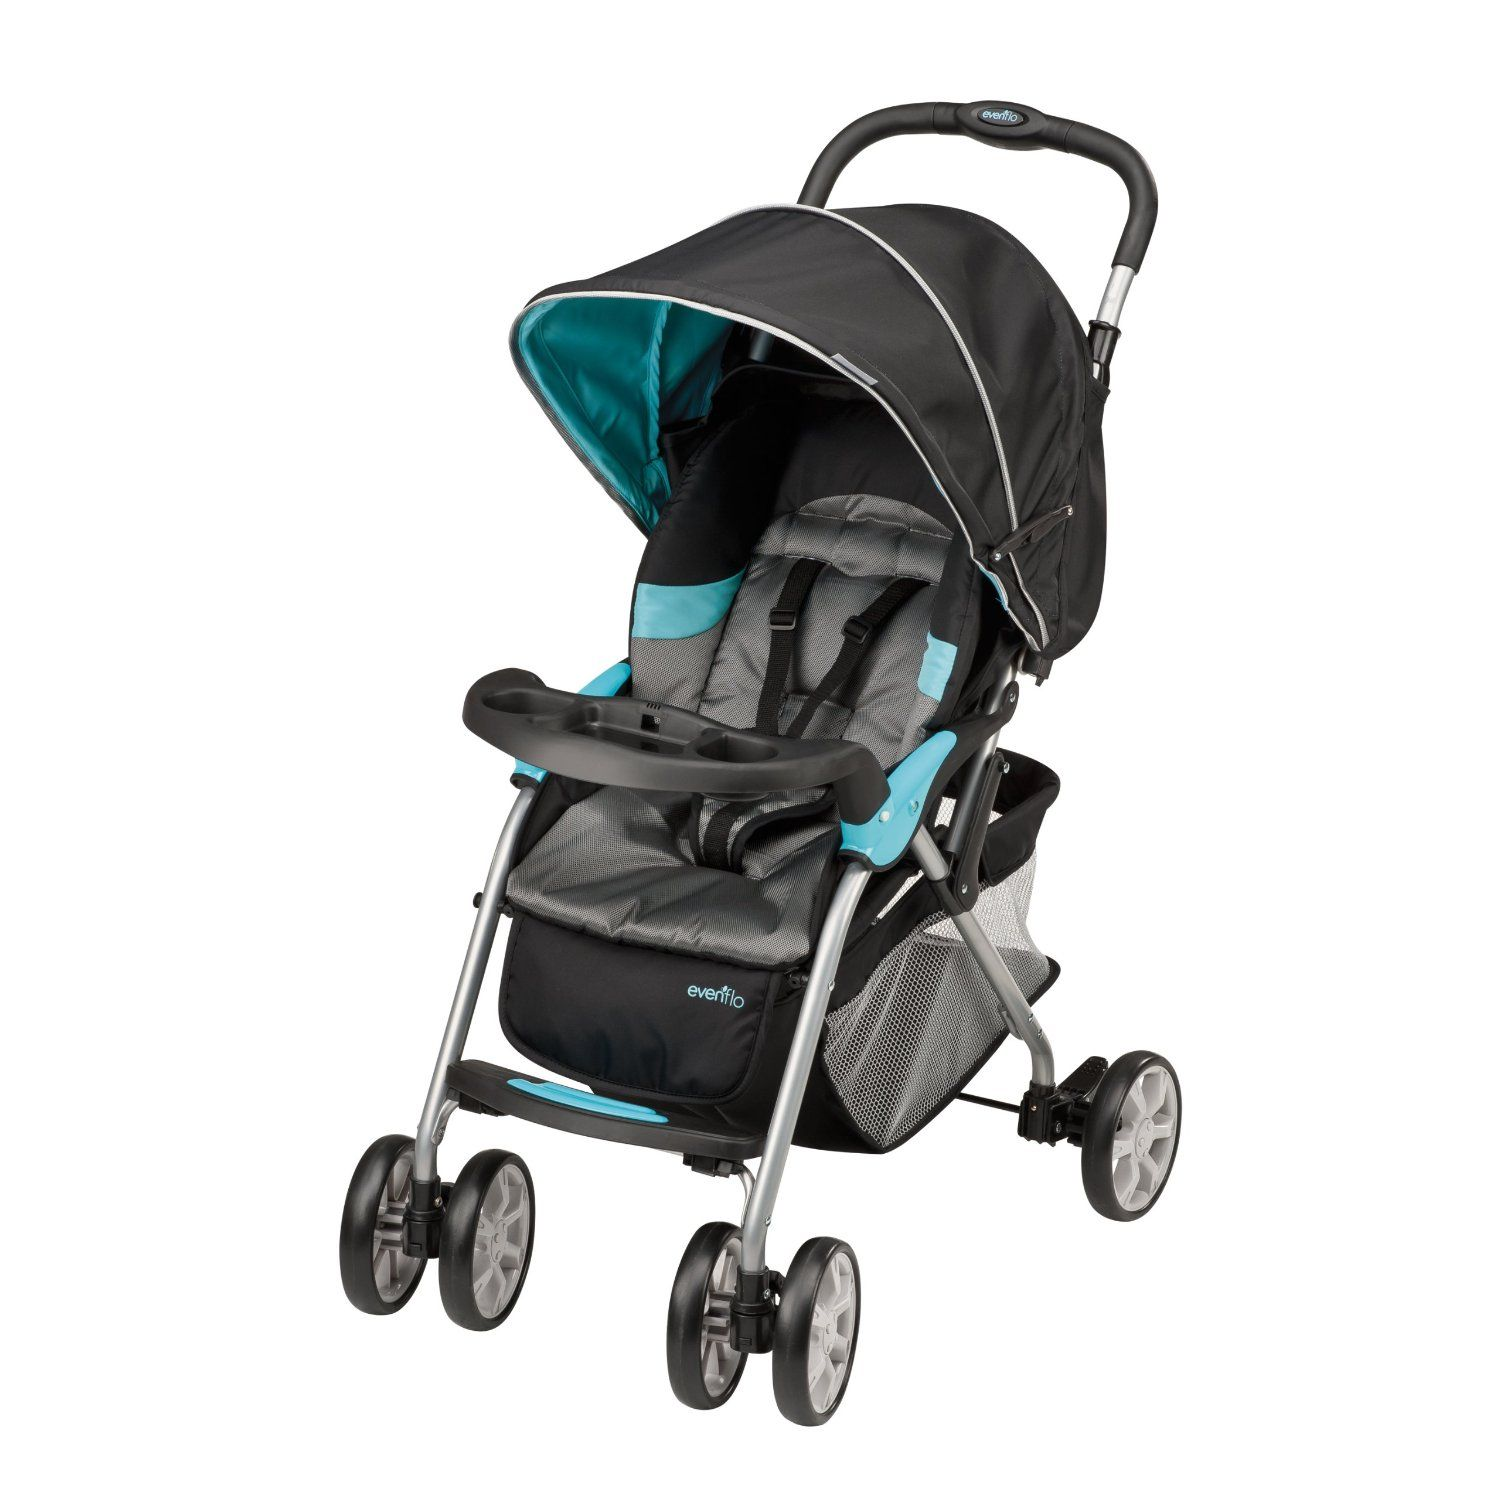 Amazon.com: Evenflo FeatherLite 200 Stroller with Embrace 35 Car ...